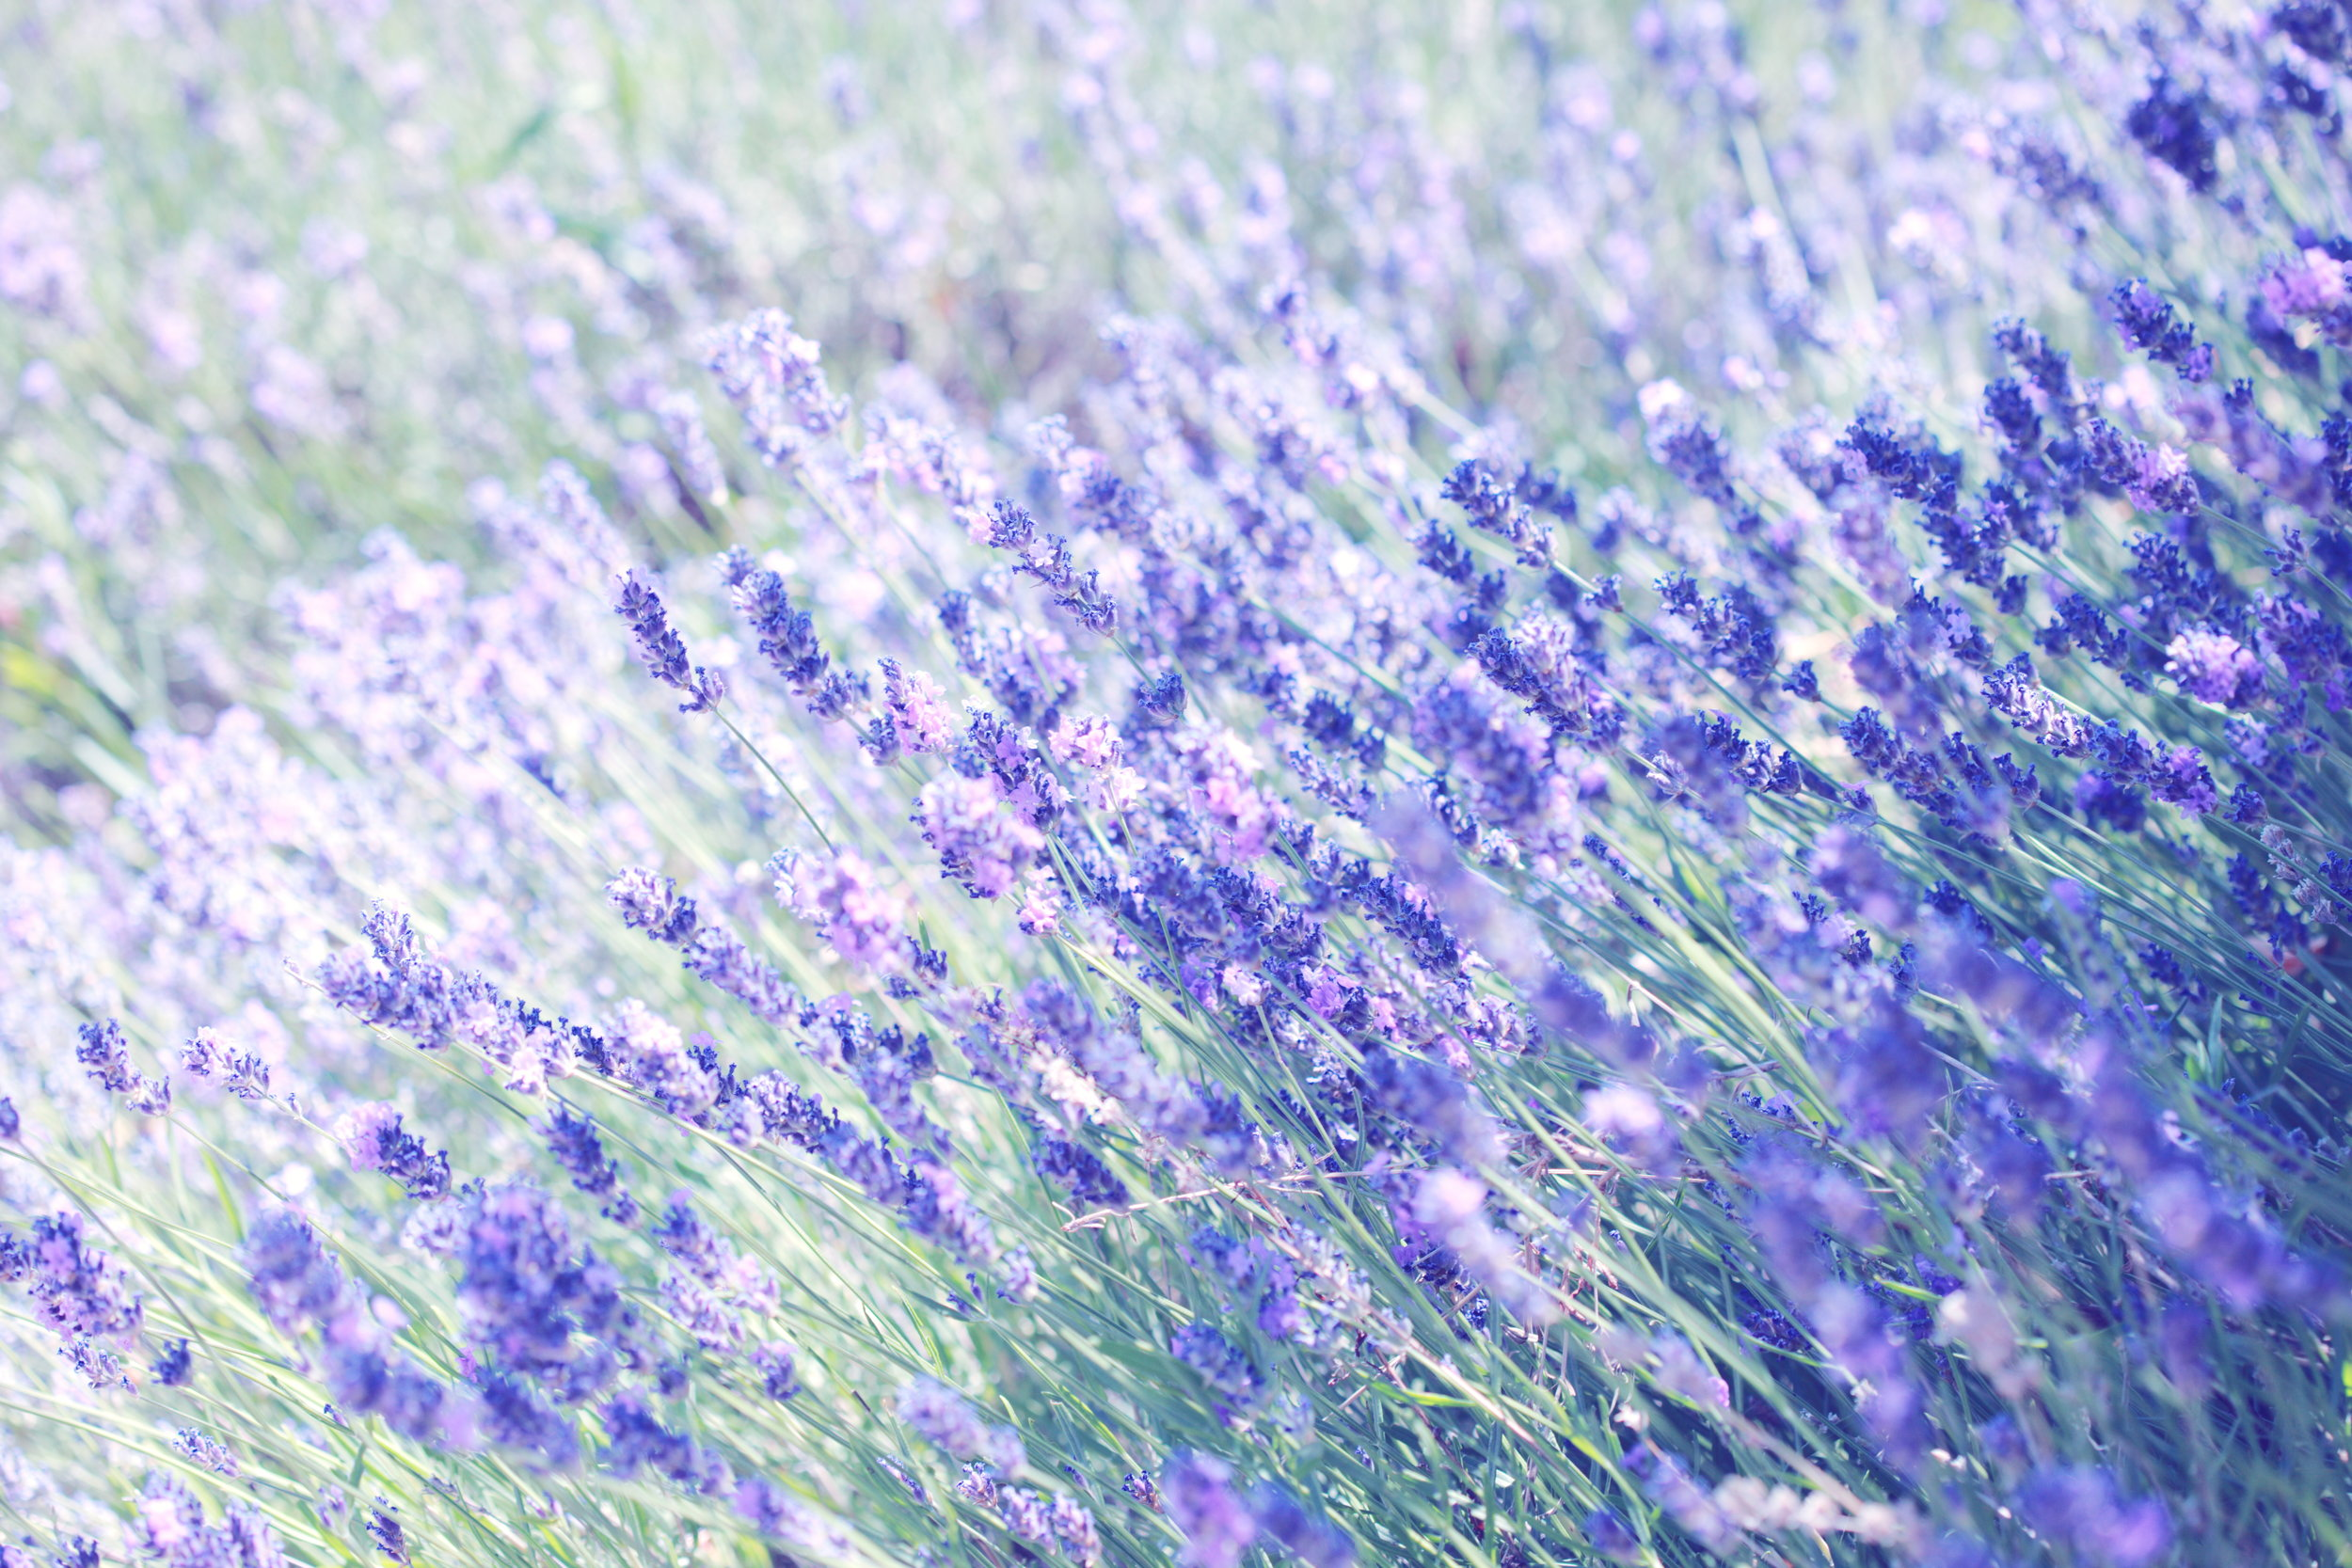 The Lavender Project - Coming soon. . . The lavender project is an opportunity to engage with others interested in making the world a better place through sharing and giving of oneself offering kindness to others.